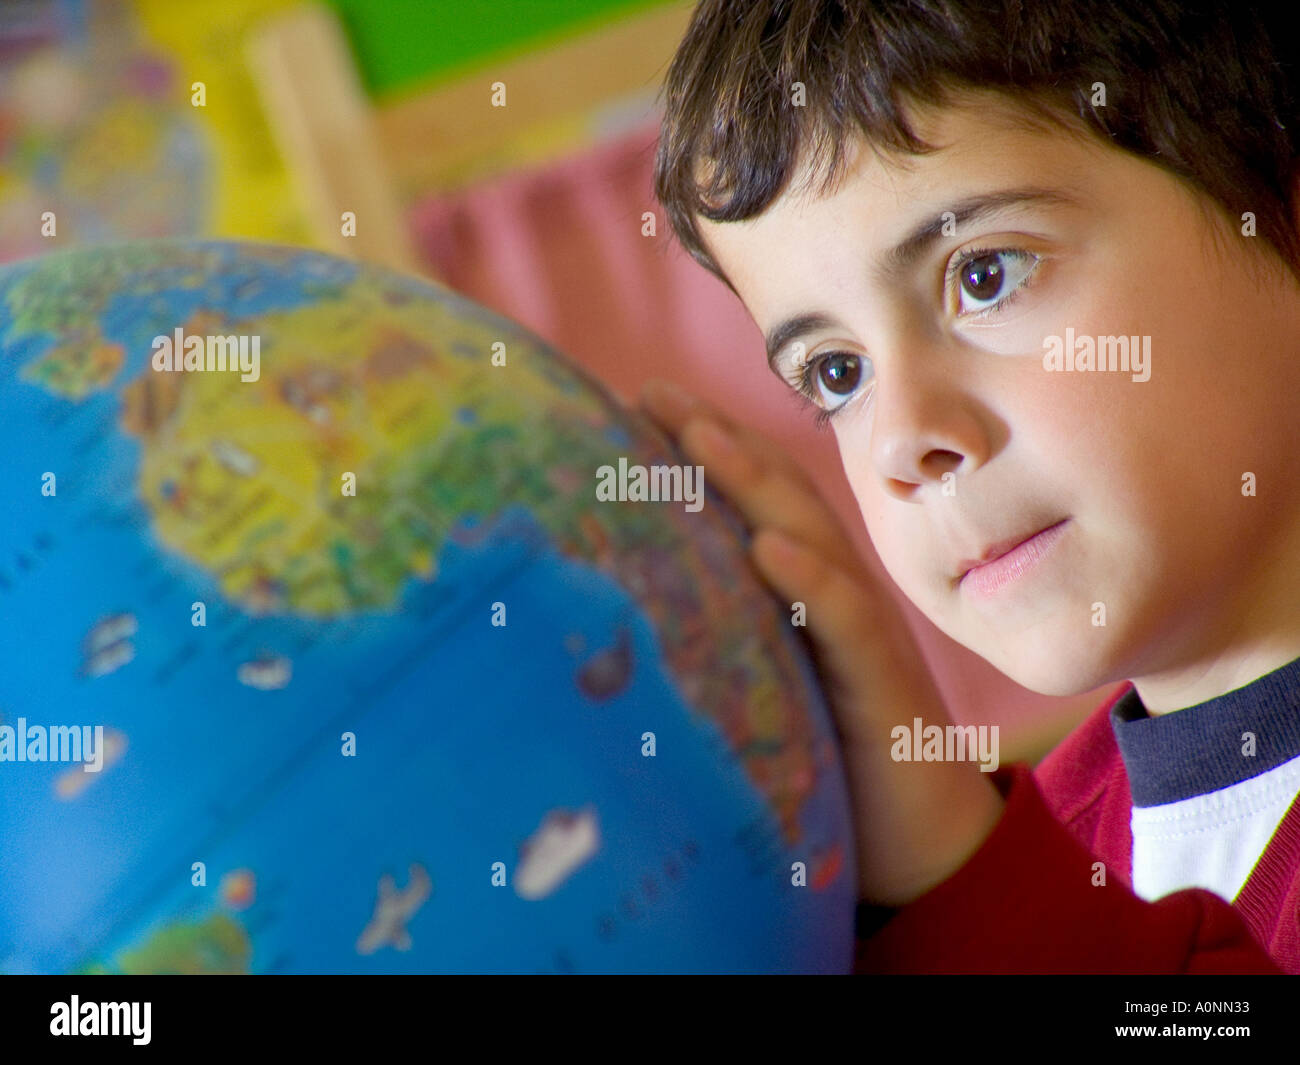 Close view on infant boy in school kindergarten class looking at world atlas globe - Stock Image